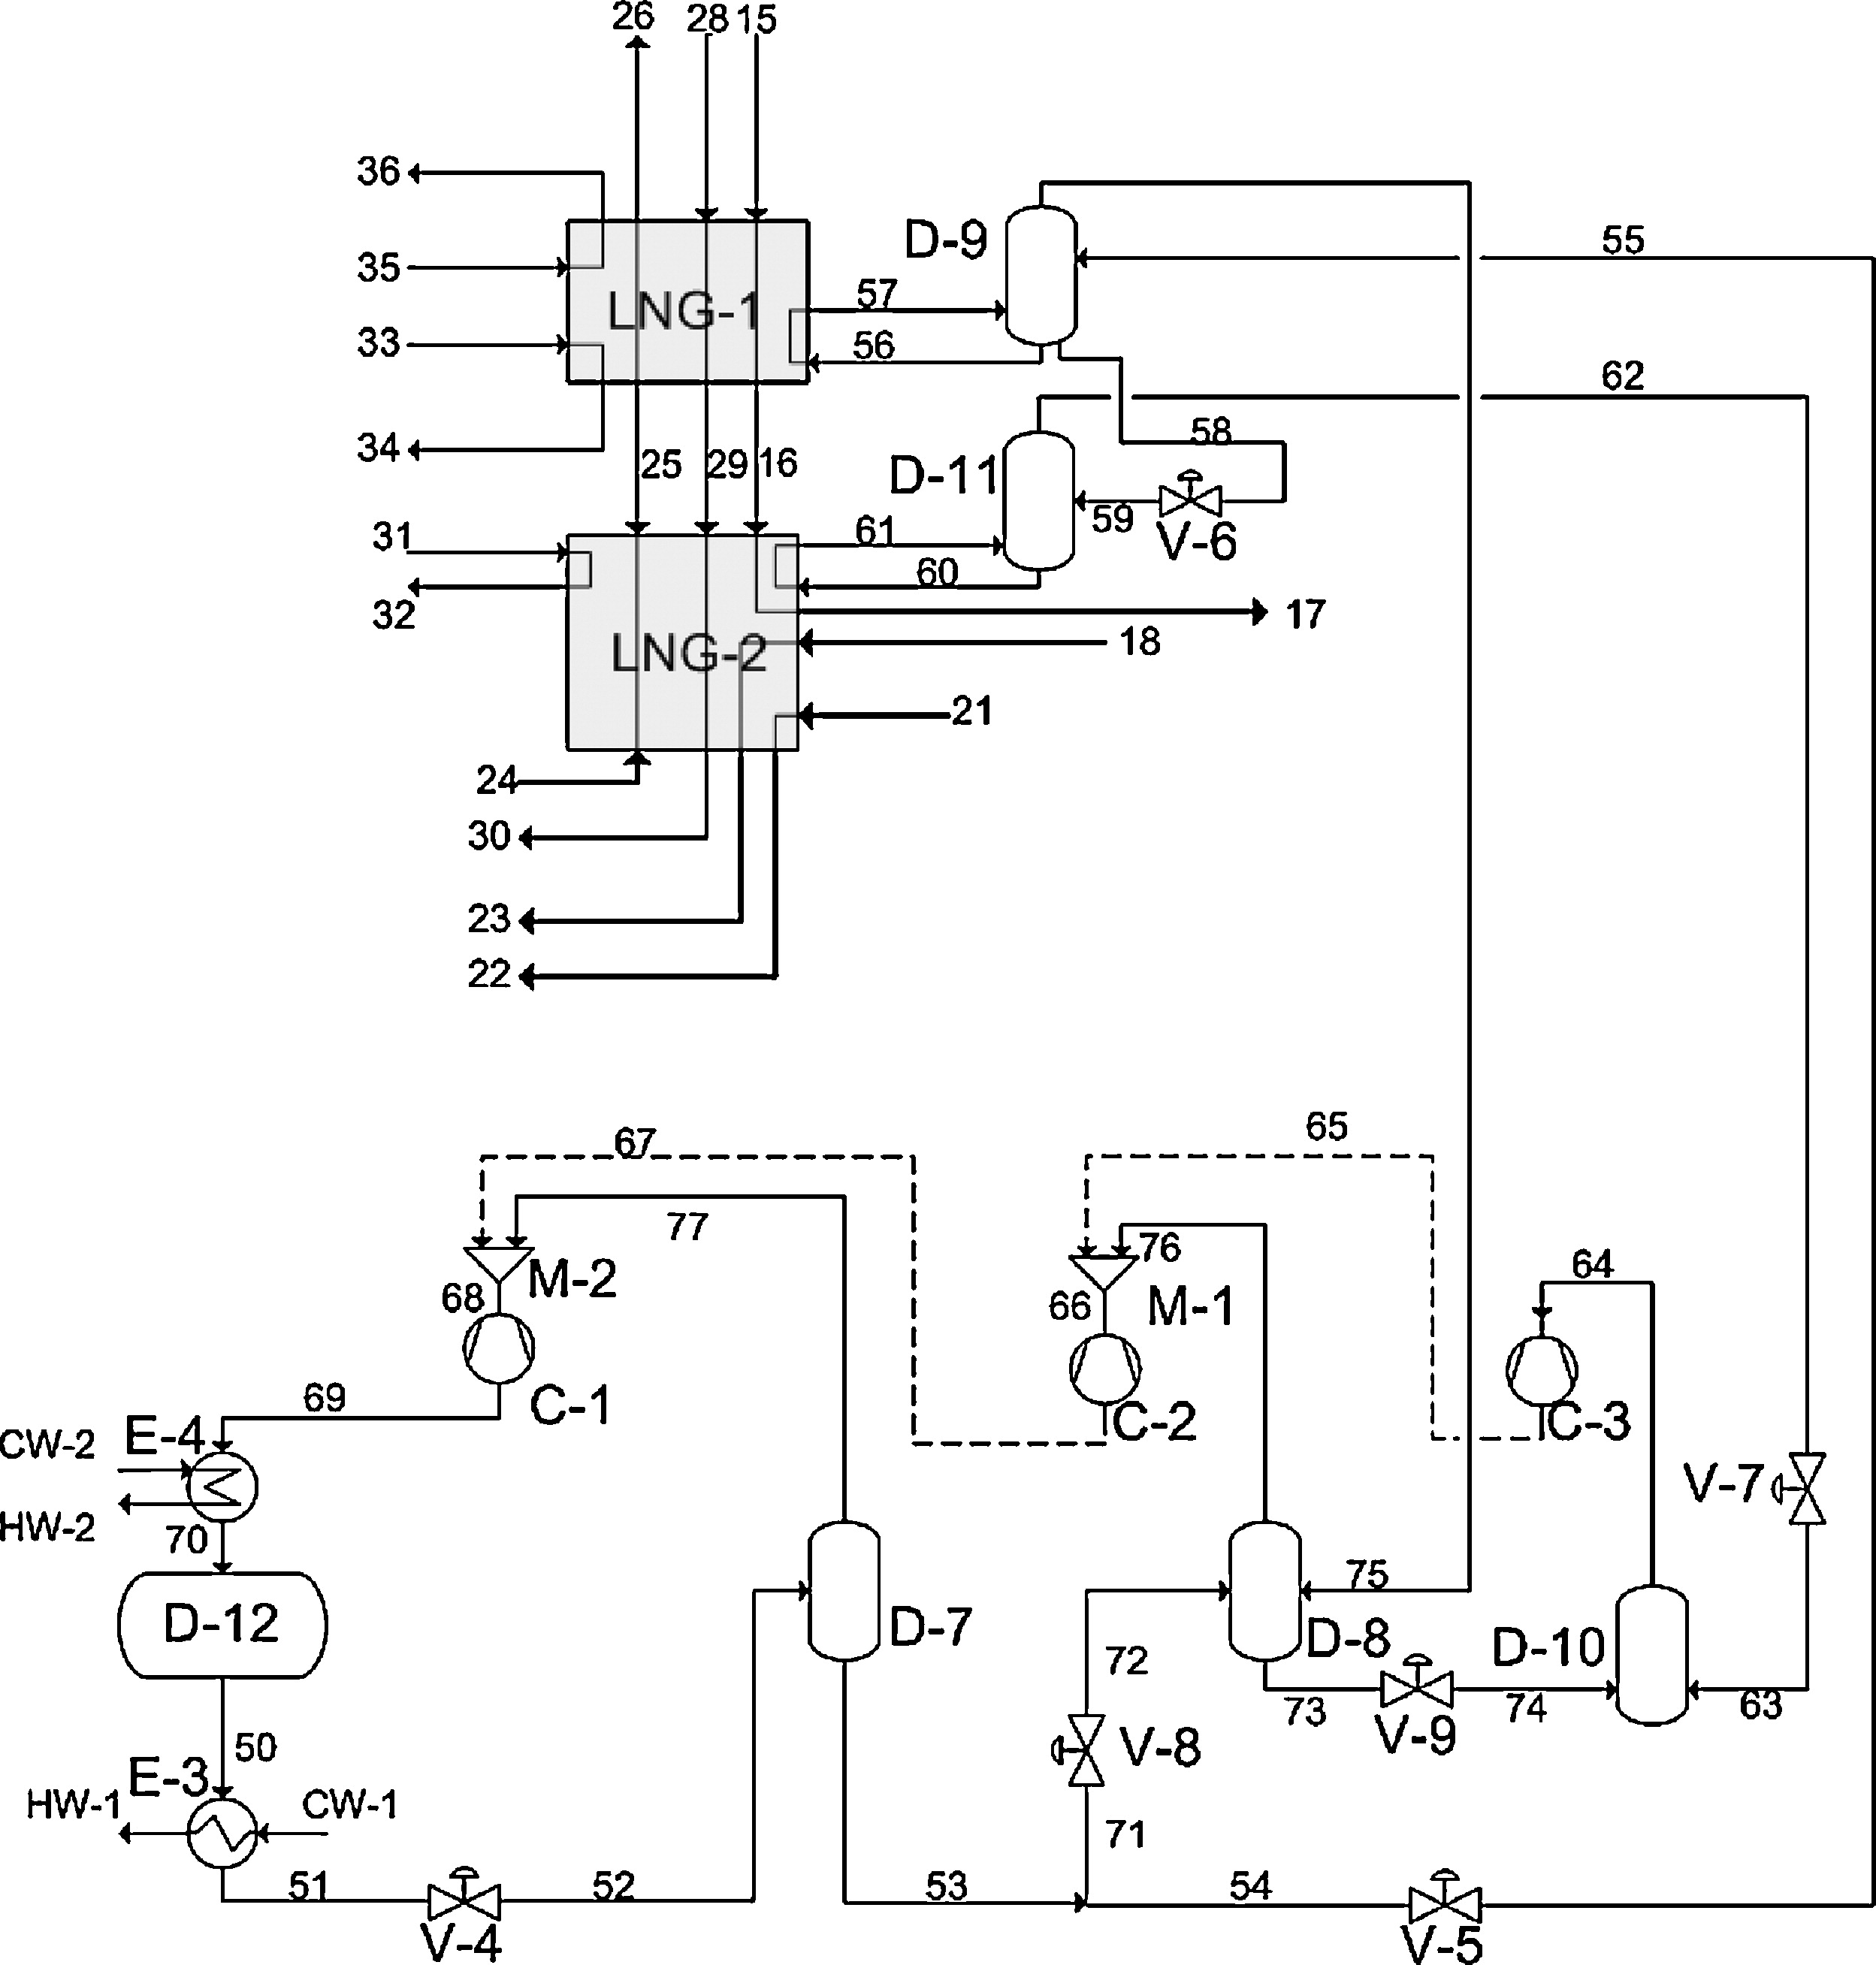 Exergy analysis of c2 recovery plants refrigeration cycles process flow diagram of refrigeration cycle view large image pooptronica Images